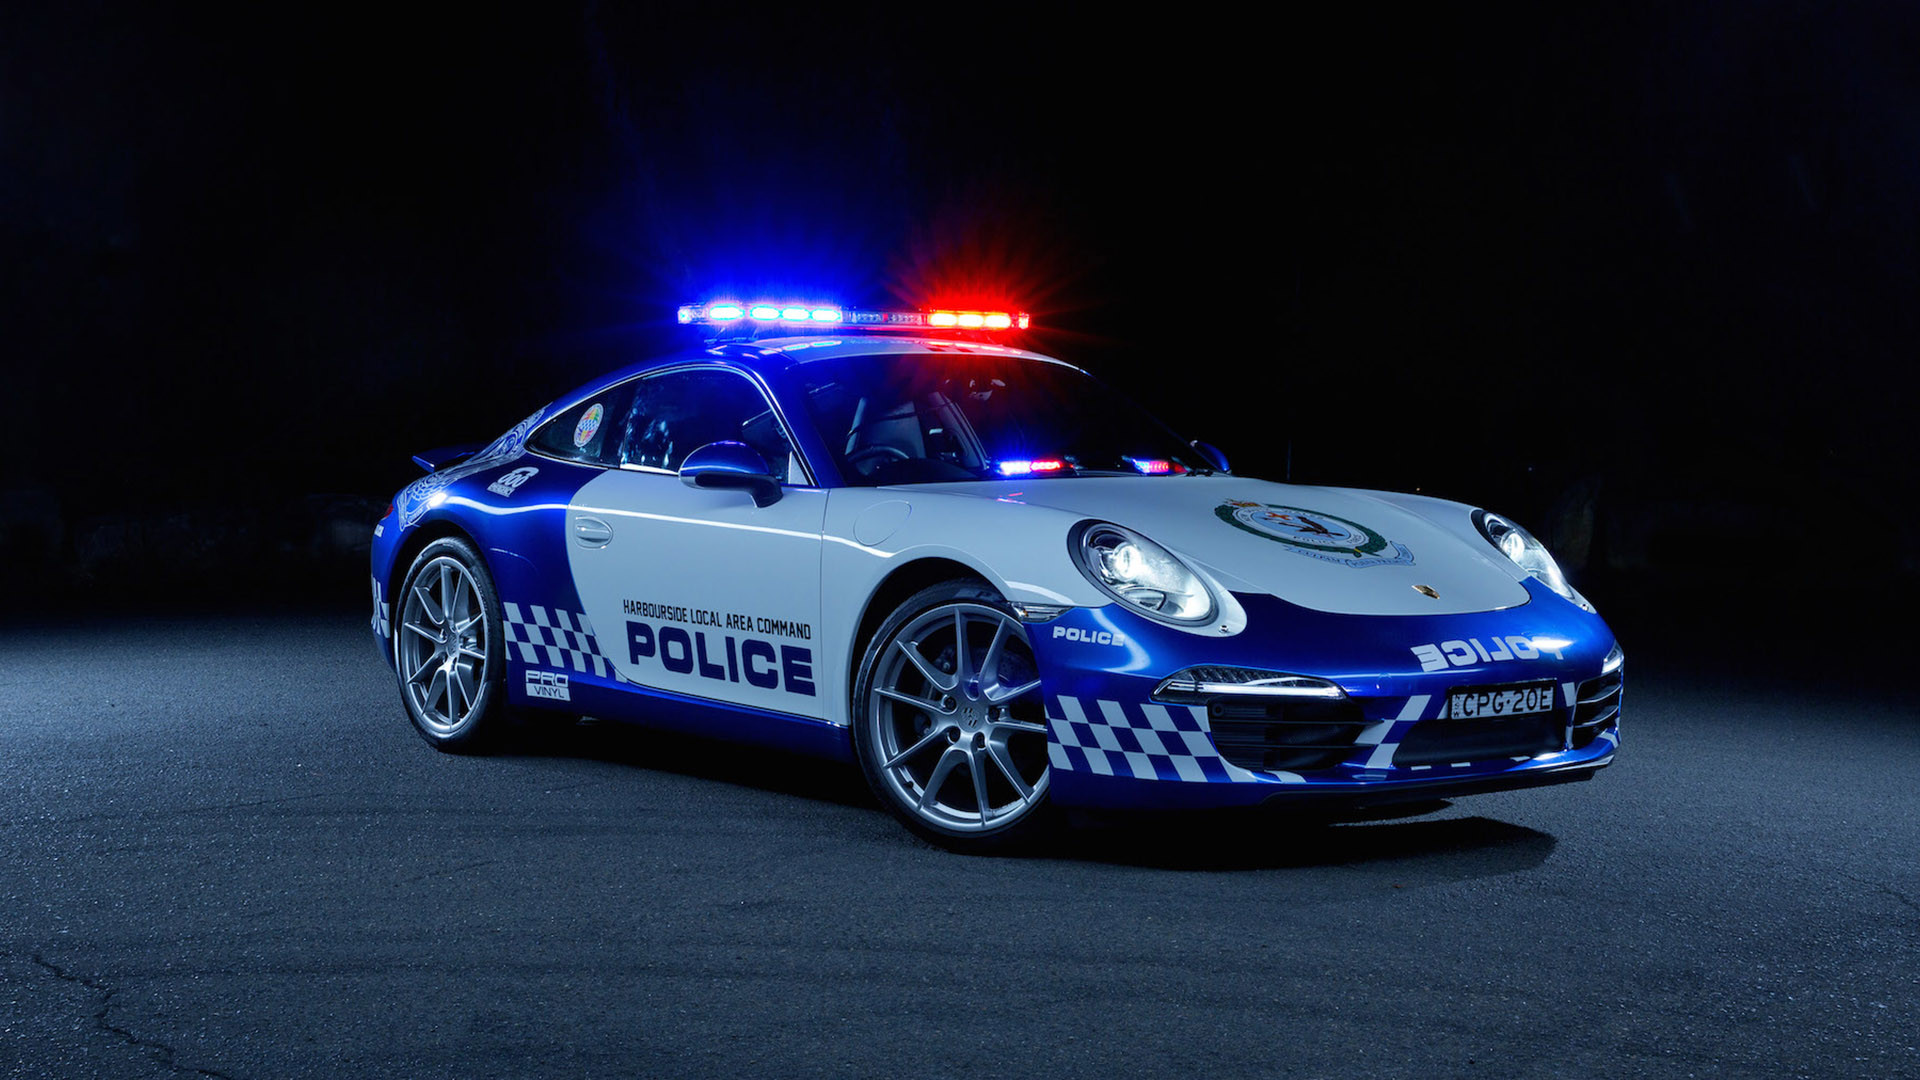 1920x1080 Police Car Wallpapers Widescreen